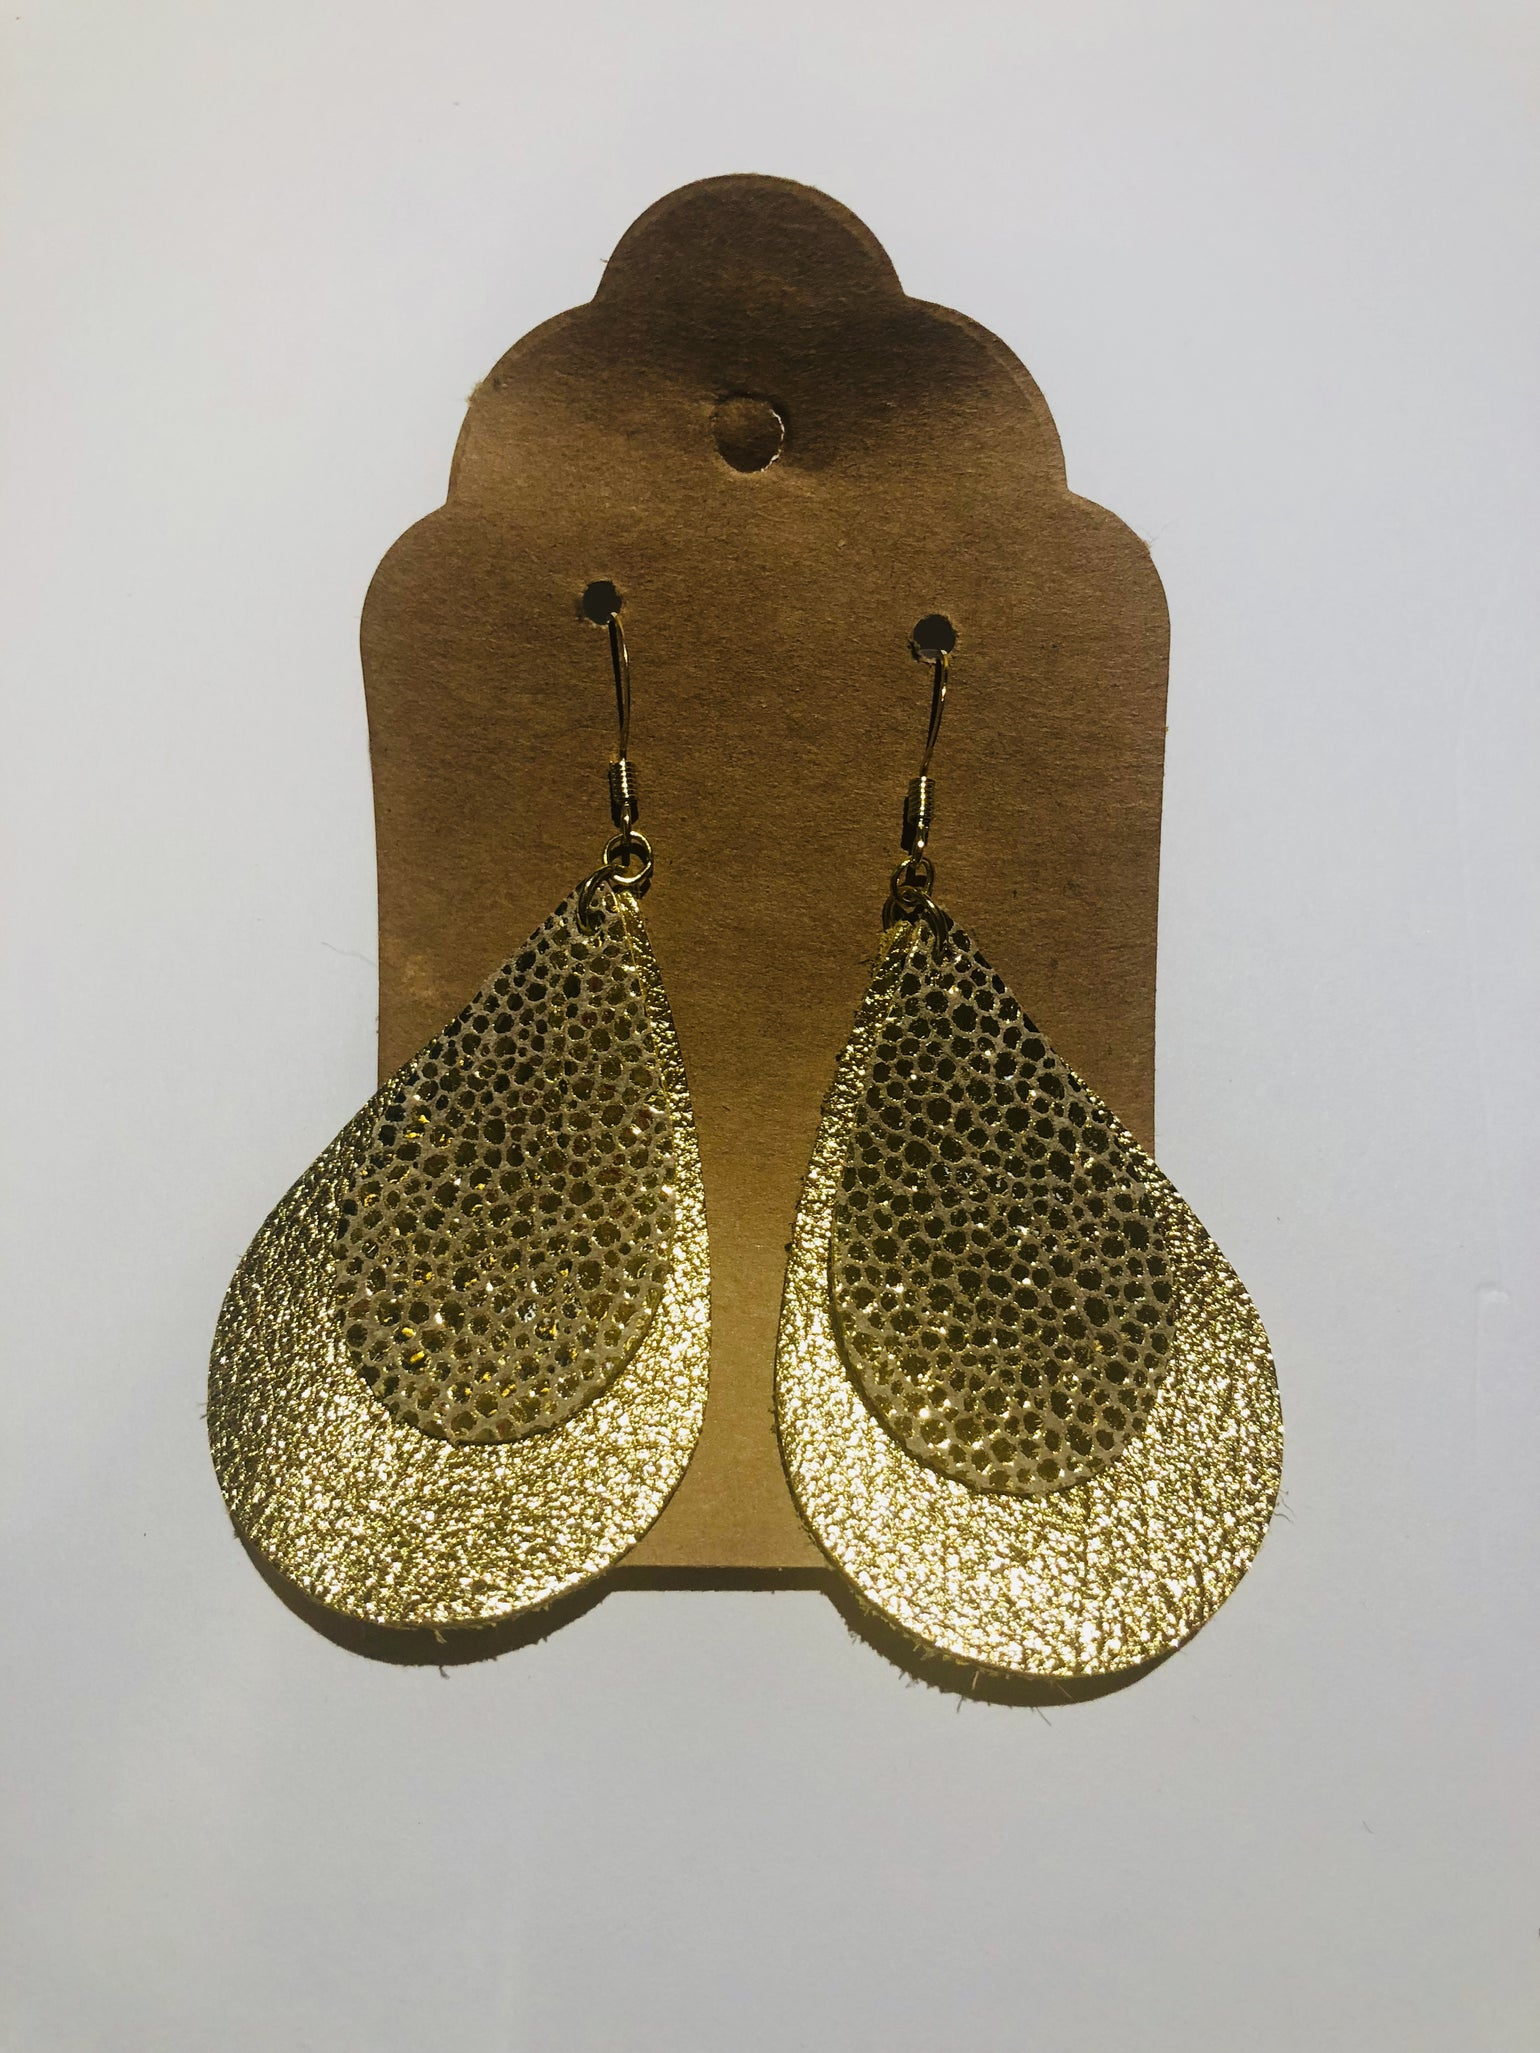 Image of Leather Earrings - Double Teardrop Gold with Gold Stingray